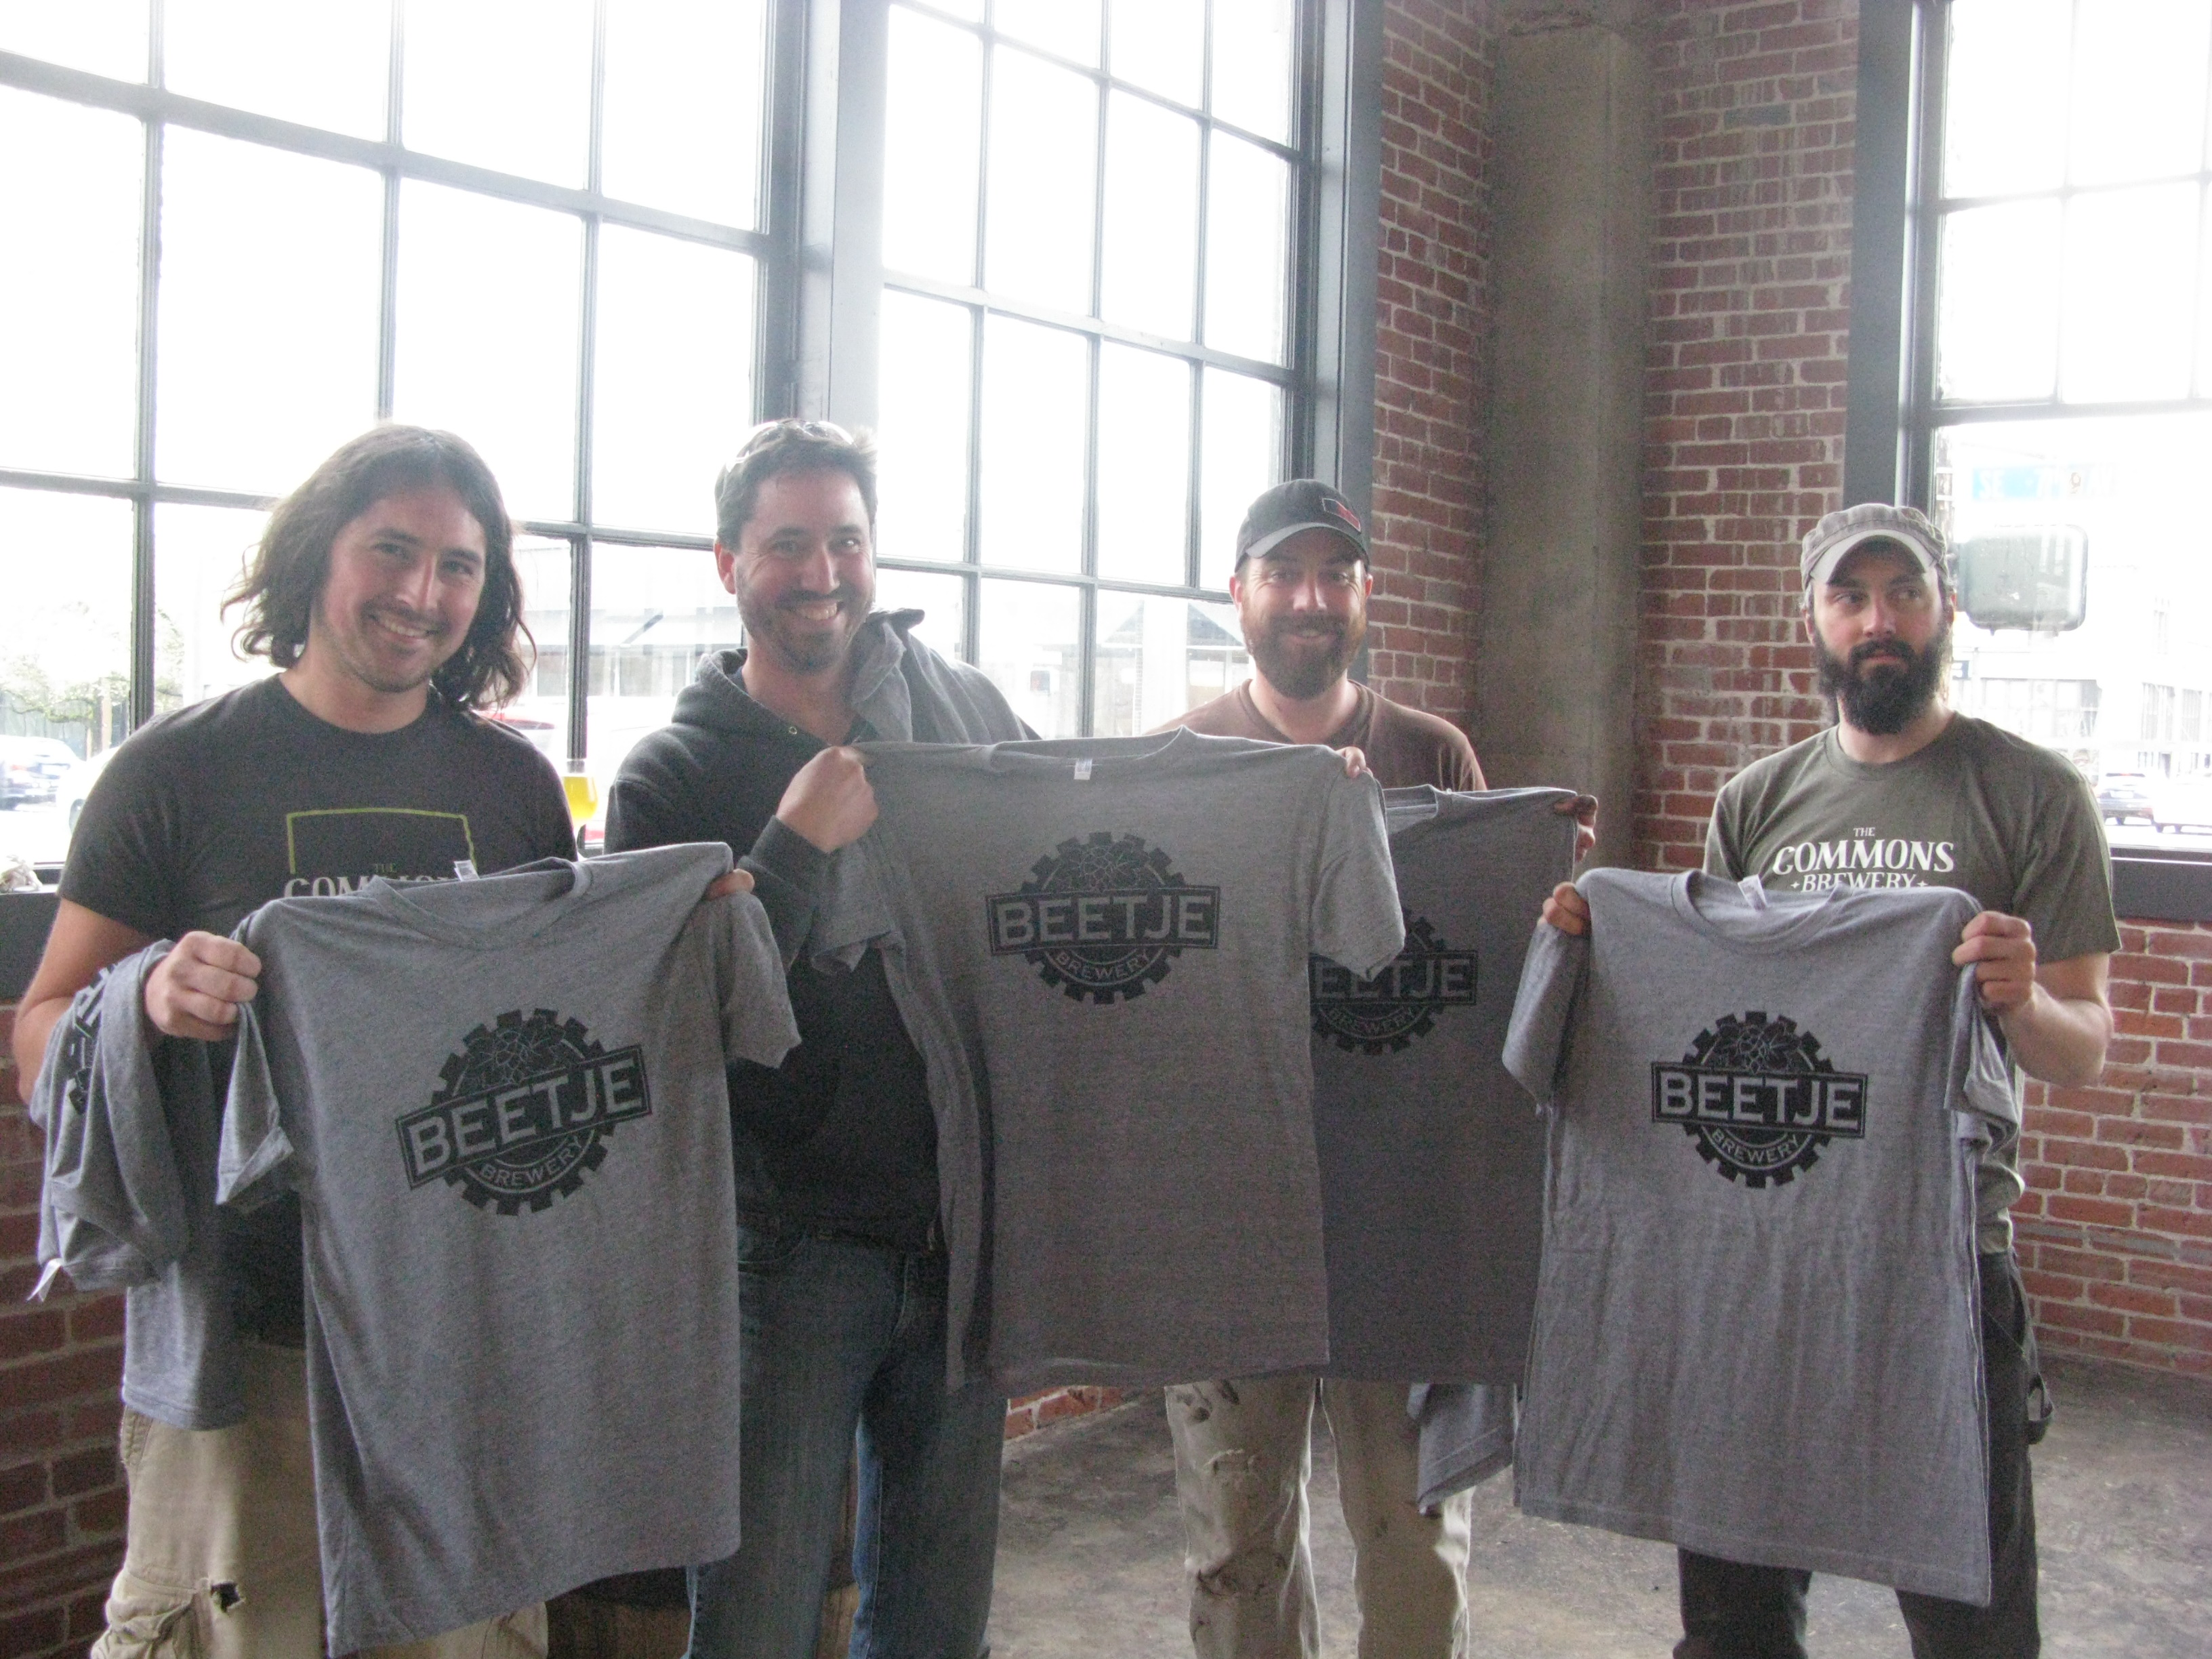 Travis, Mike, Sean, and Sam of The Commons Brewery receive Beetje shirts. (FoystonFoto)